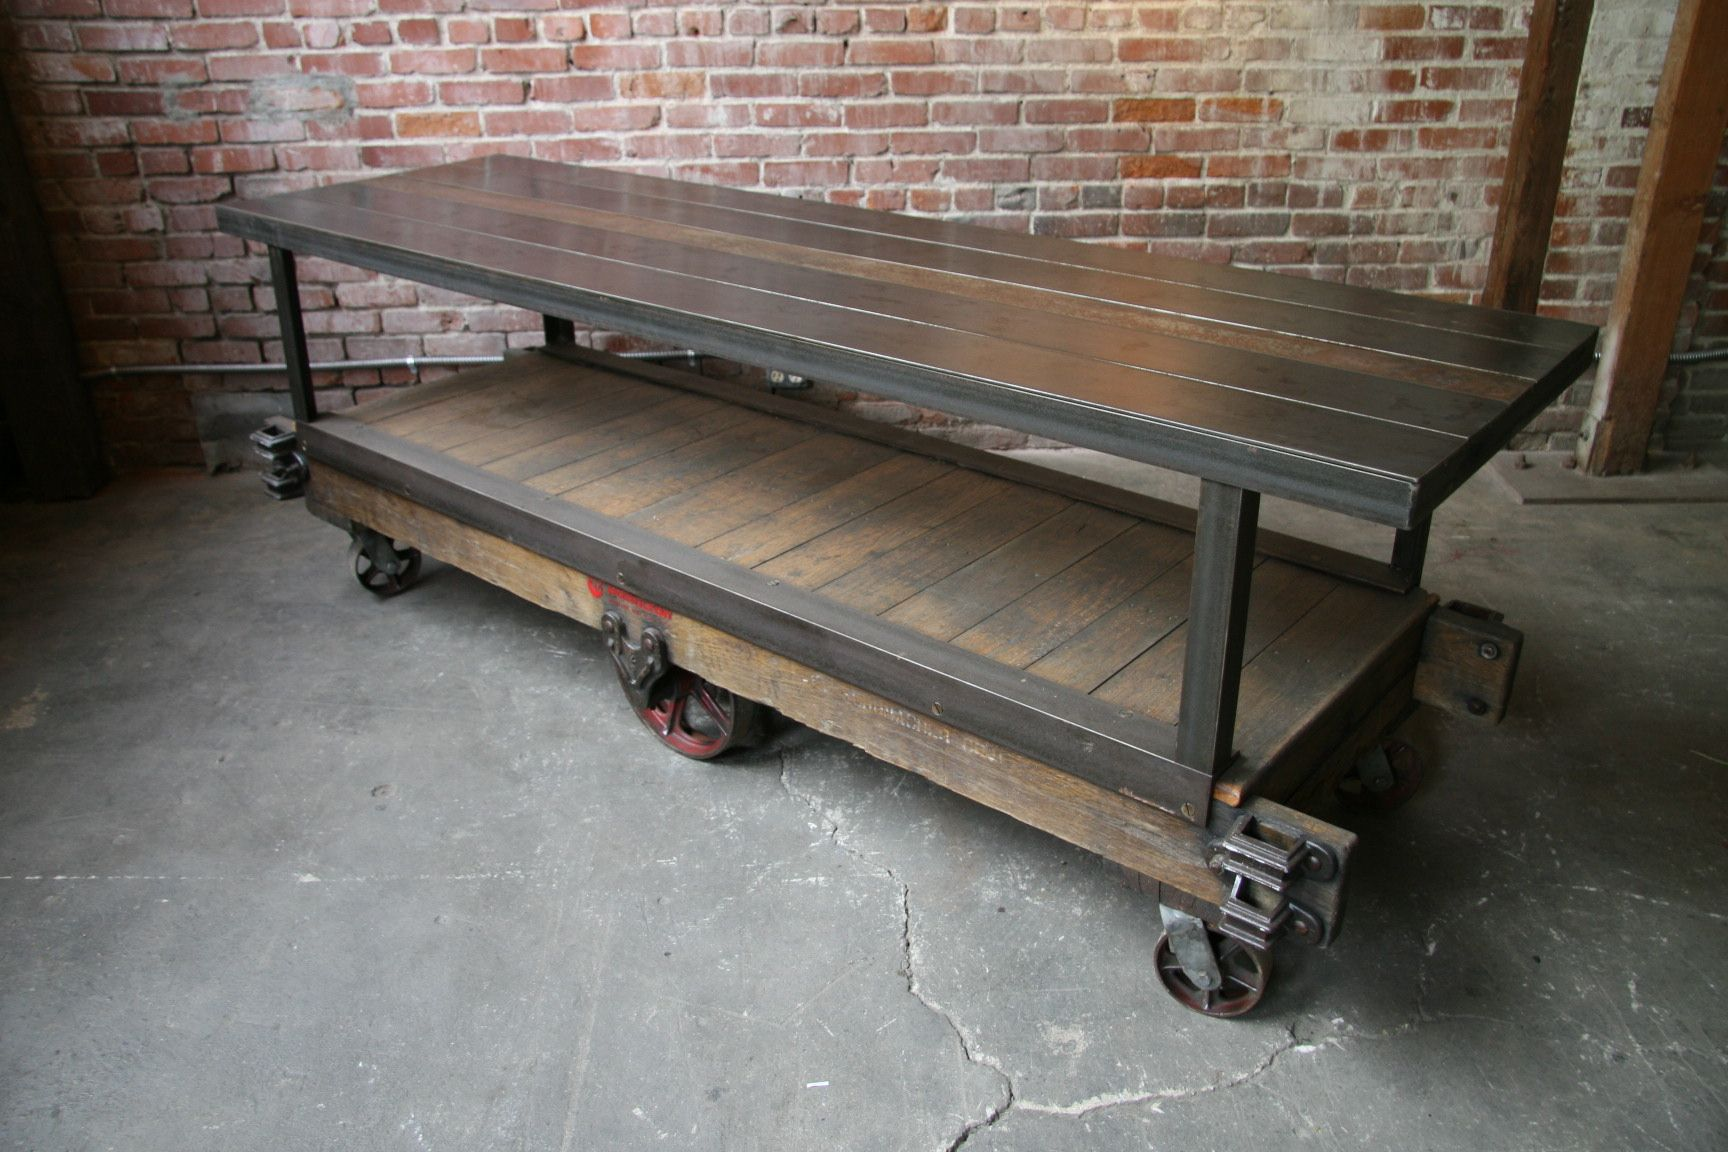 Factory caster vintage industrial furniture - I Want This For A Kitchen Island Or A Work Table In The Studio